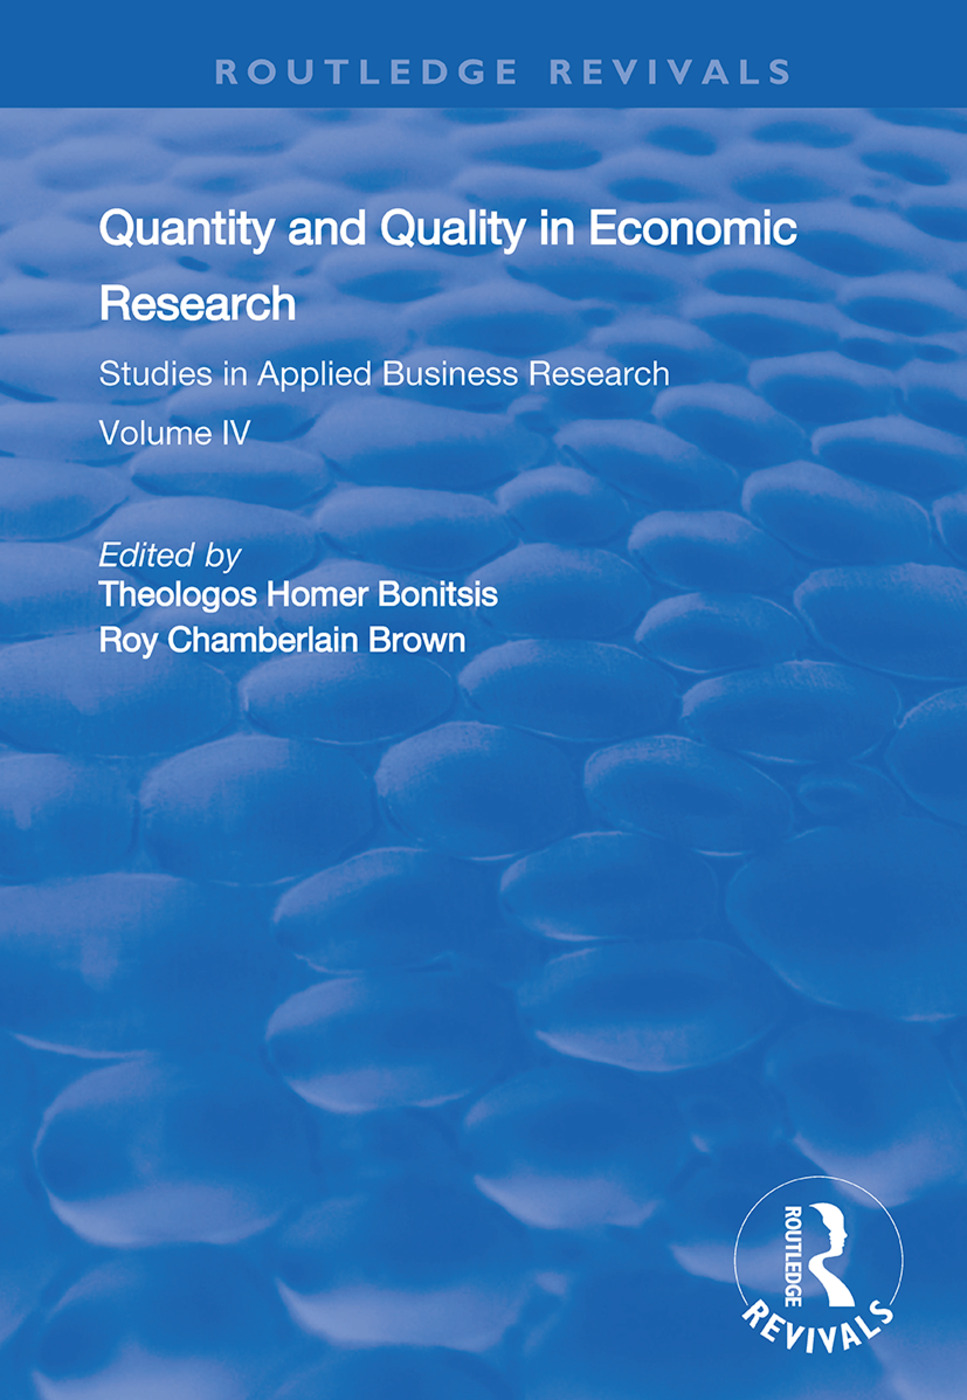 Quantity and Quality in Economic Research